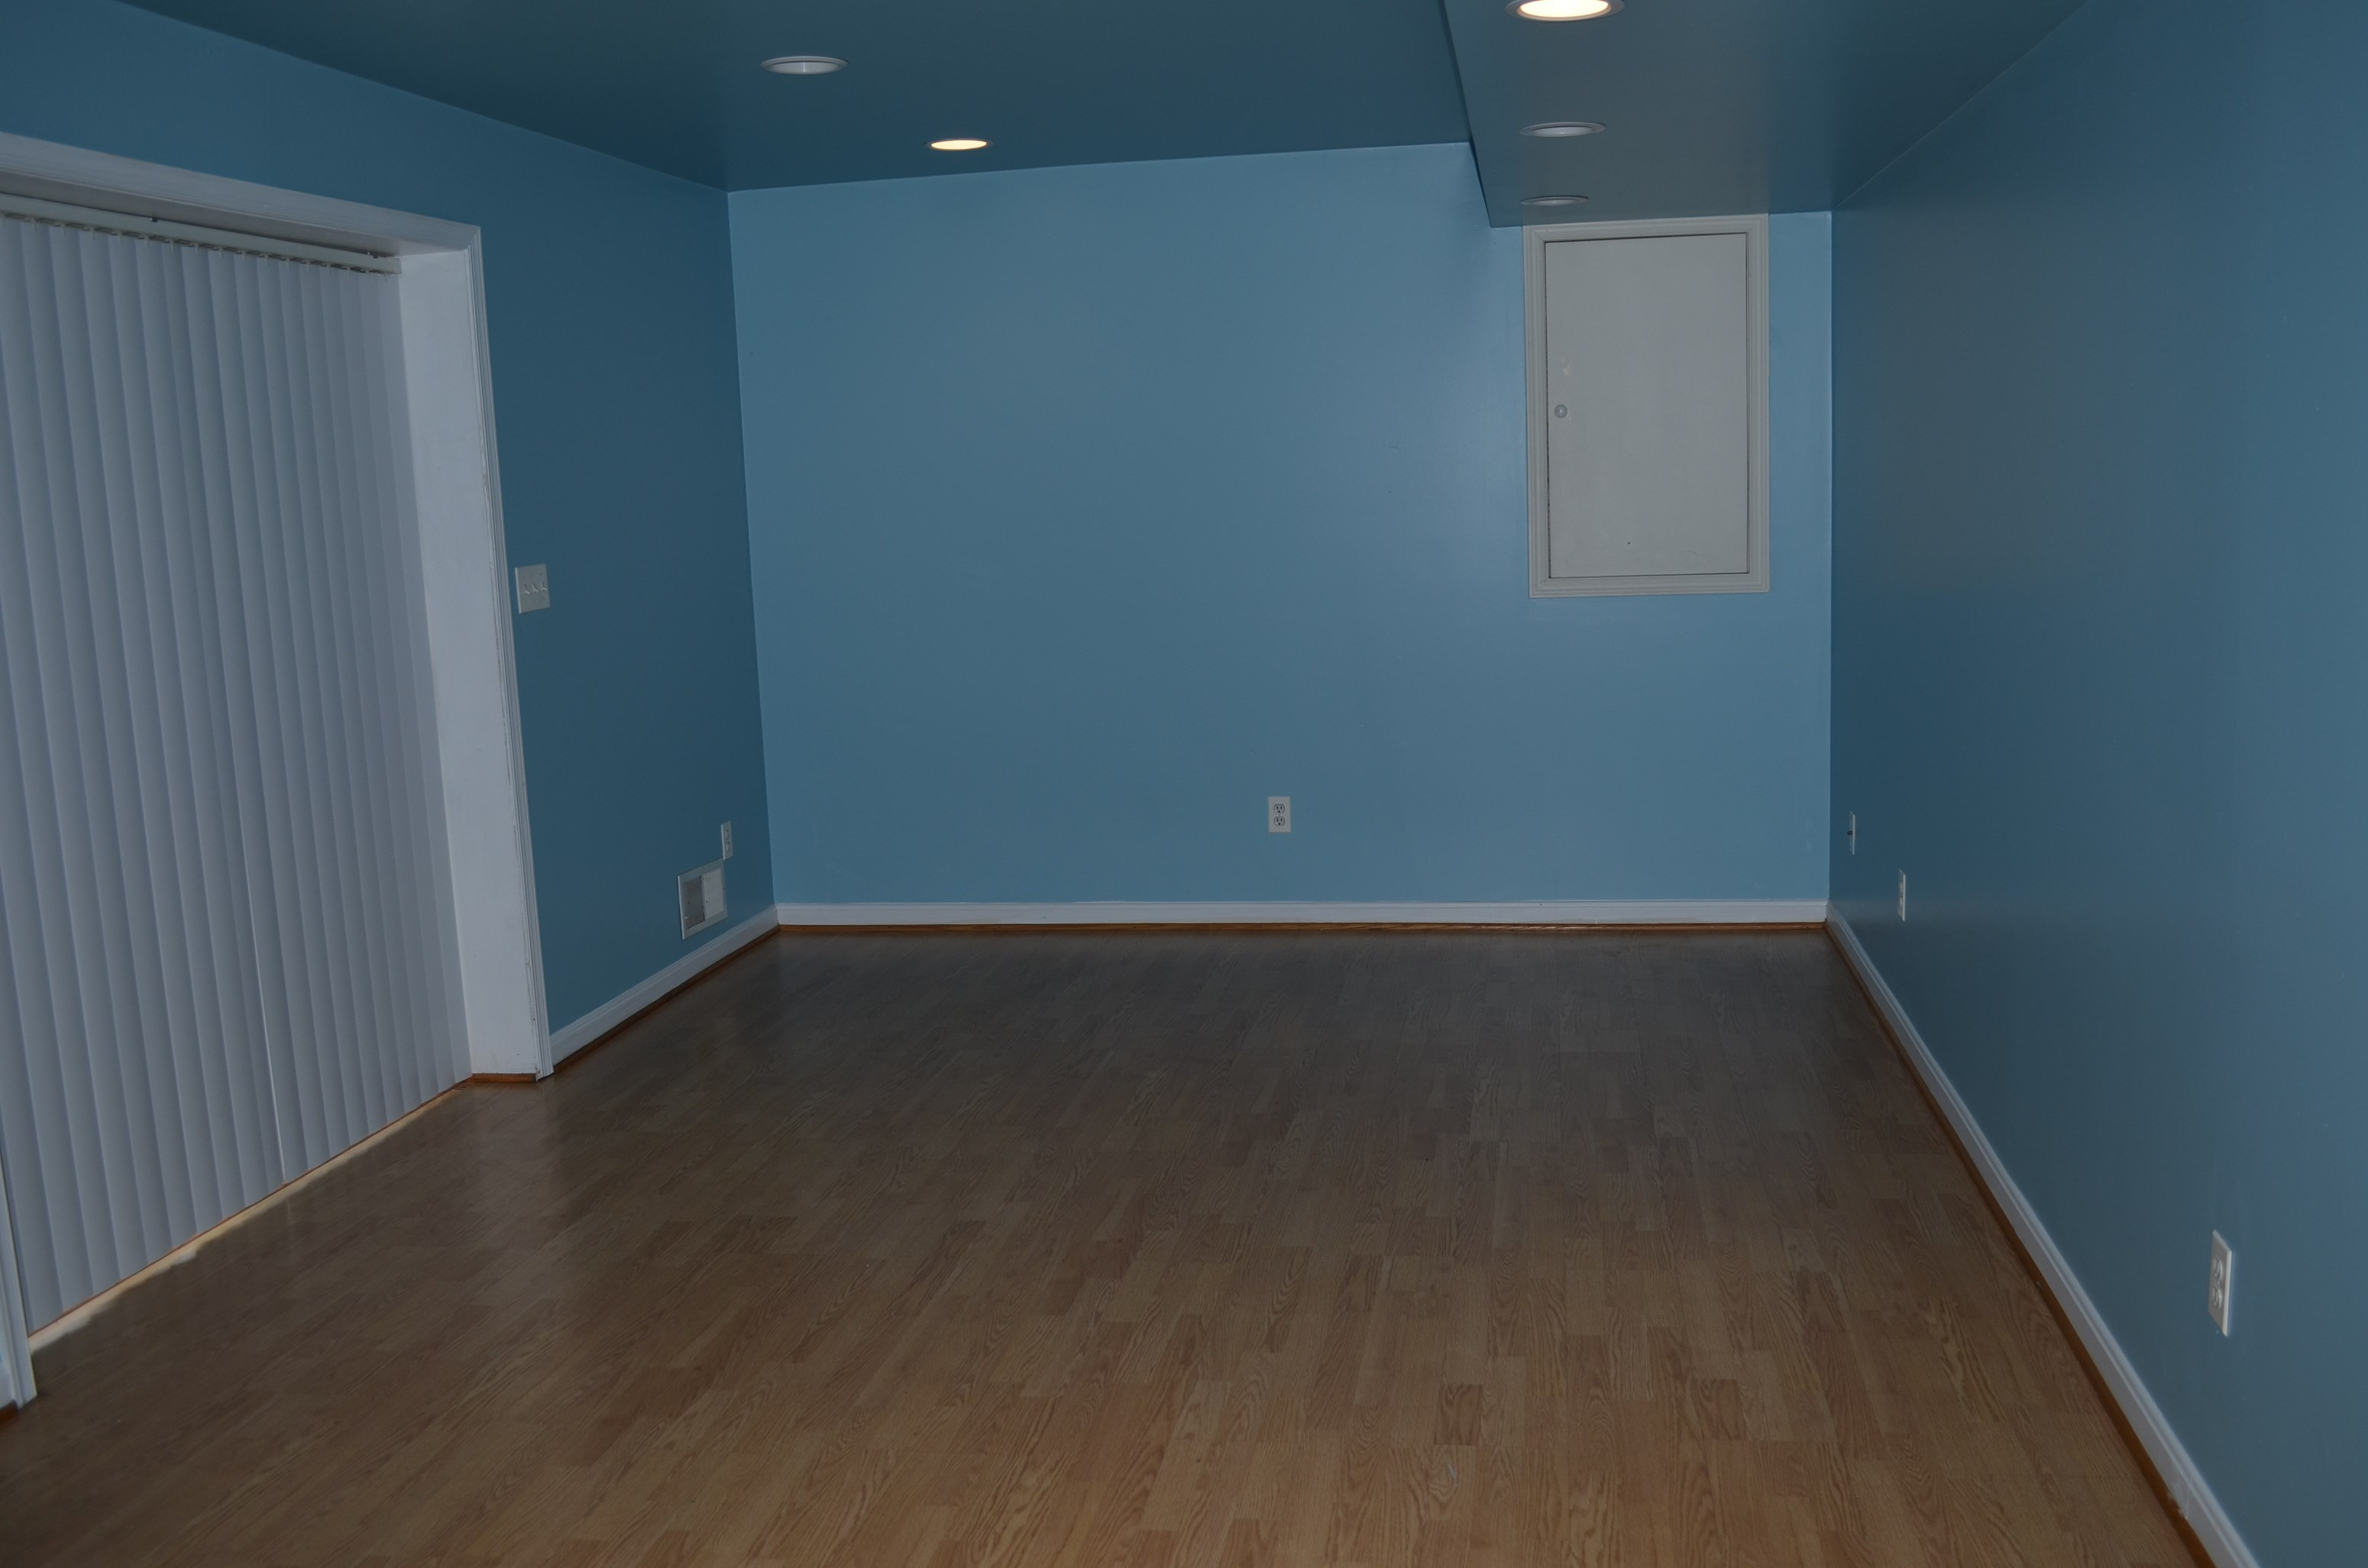 1BR, 1BATH, FULL KITCHEN BASEMENT APARTMENT WITH PRIVATE DRIVEWAY IN  ELKRIDGE, MD (